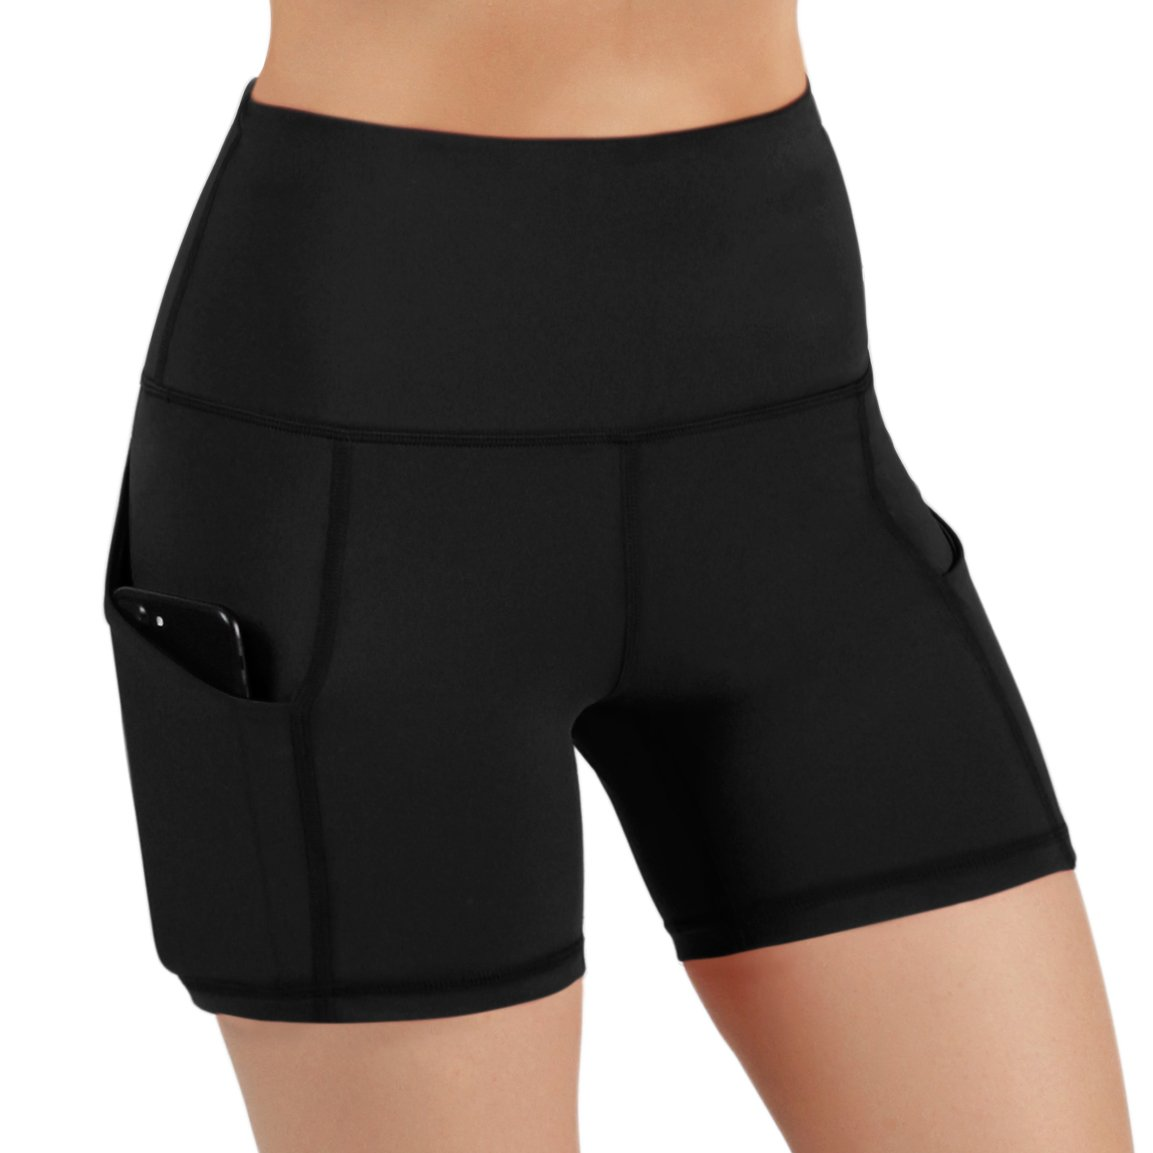 ODODOS High Waist Out Pocket Yoga Short Tummy Control Workout Running Athletic Non See-Through Yoga Shorts,Black,XXX-Large by ODODOS